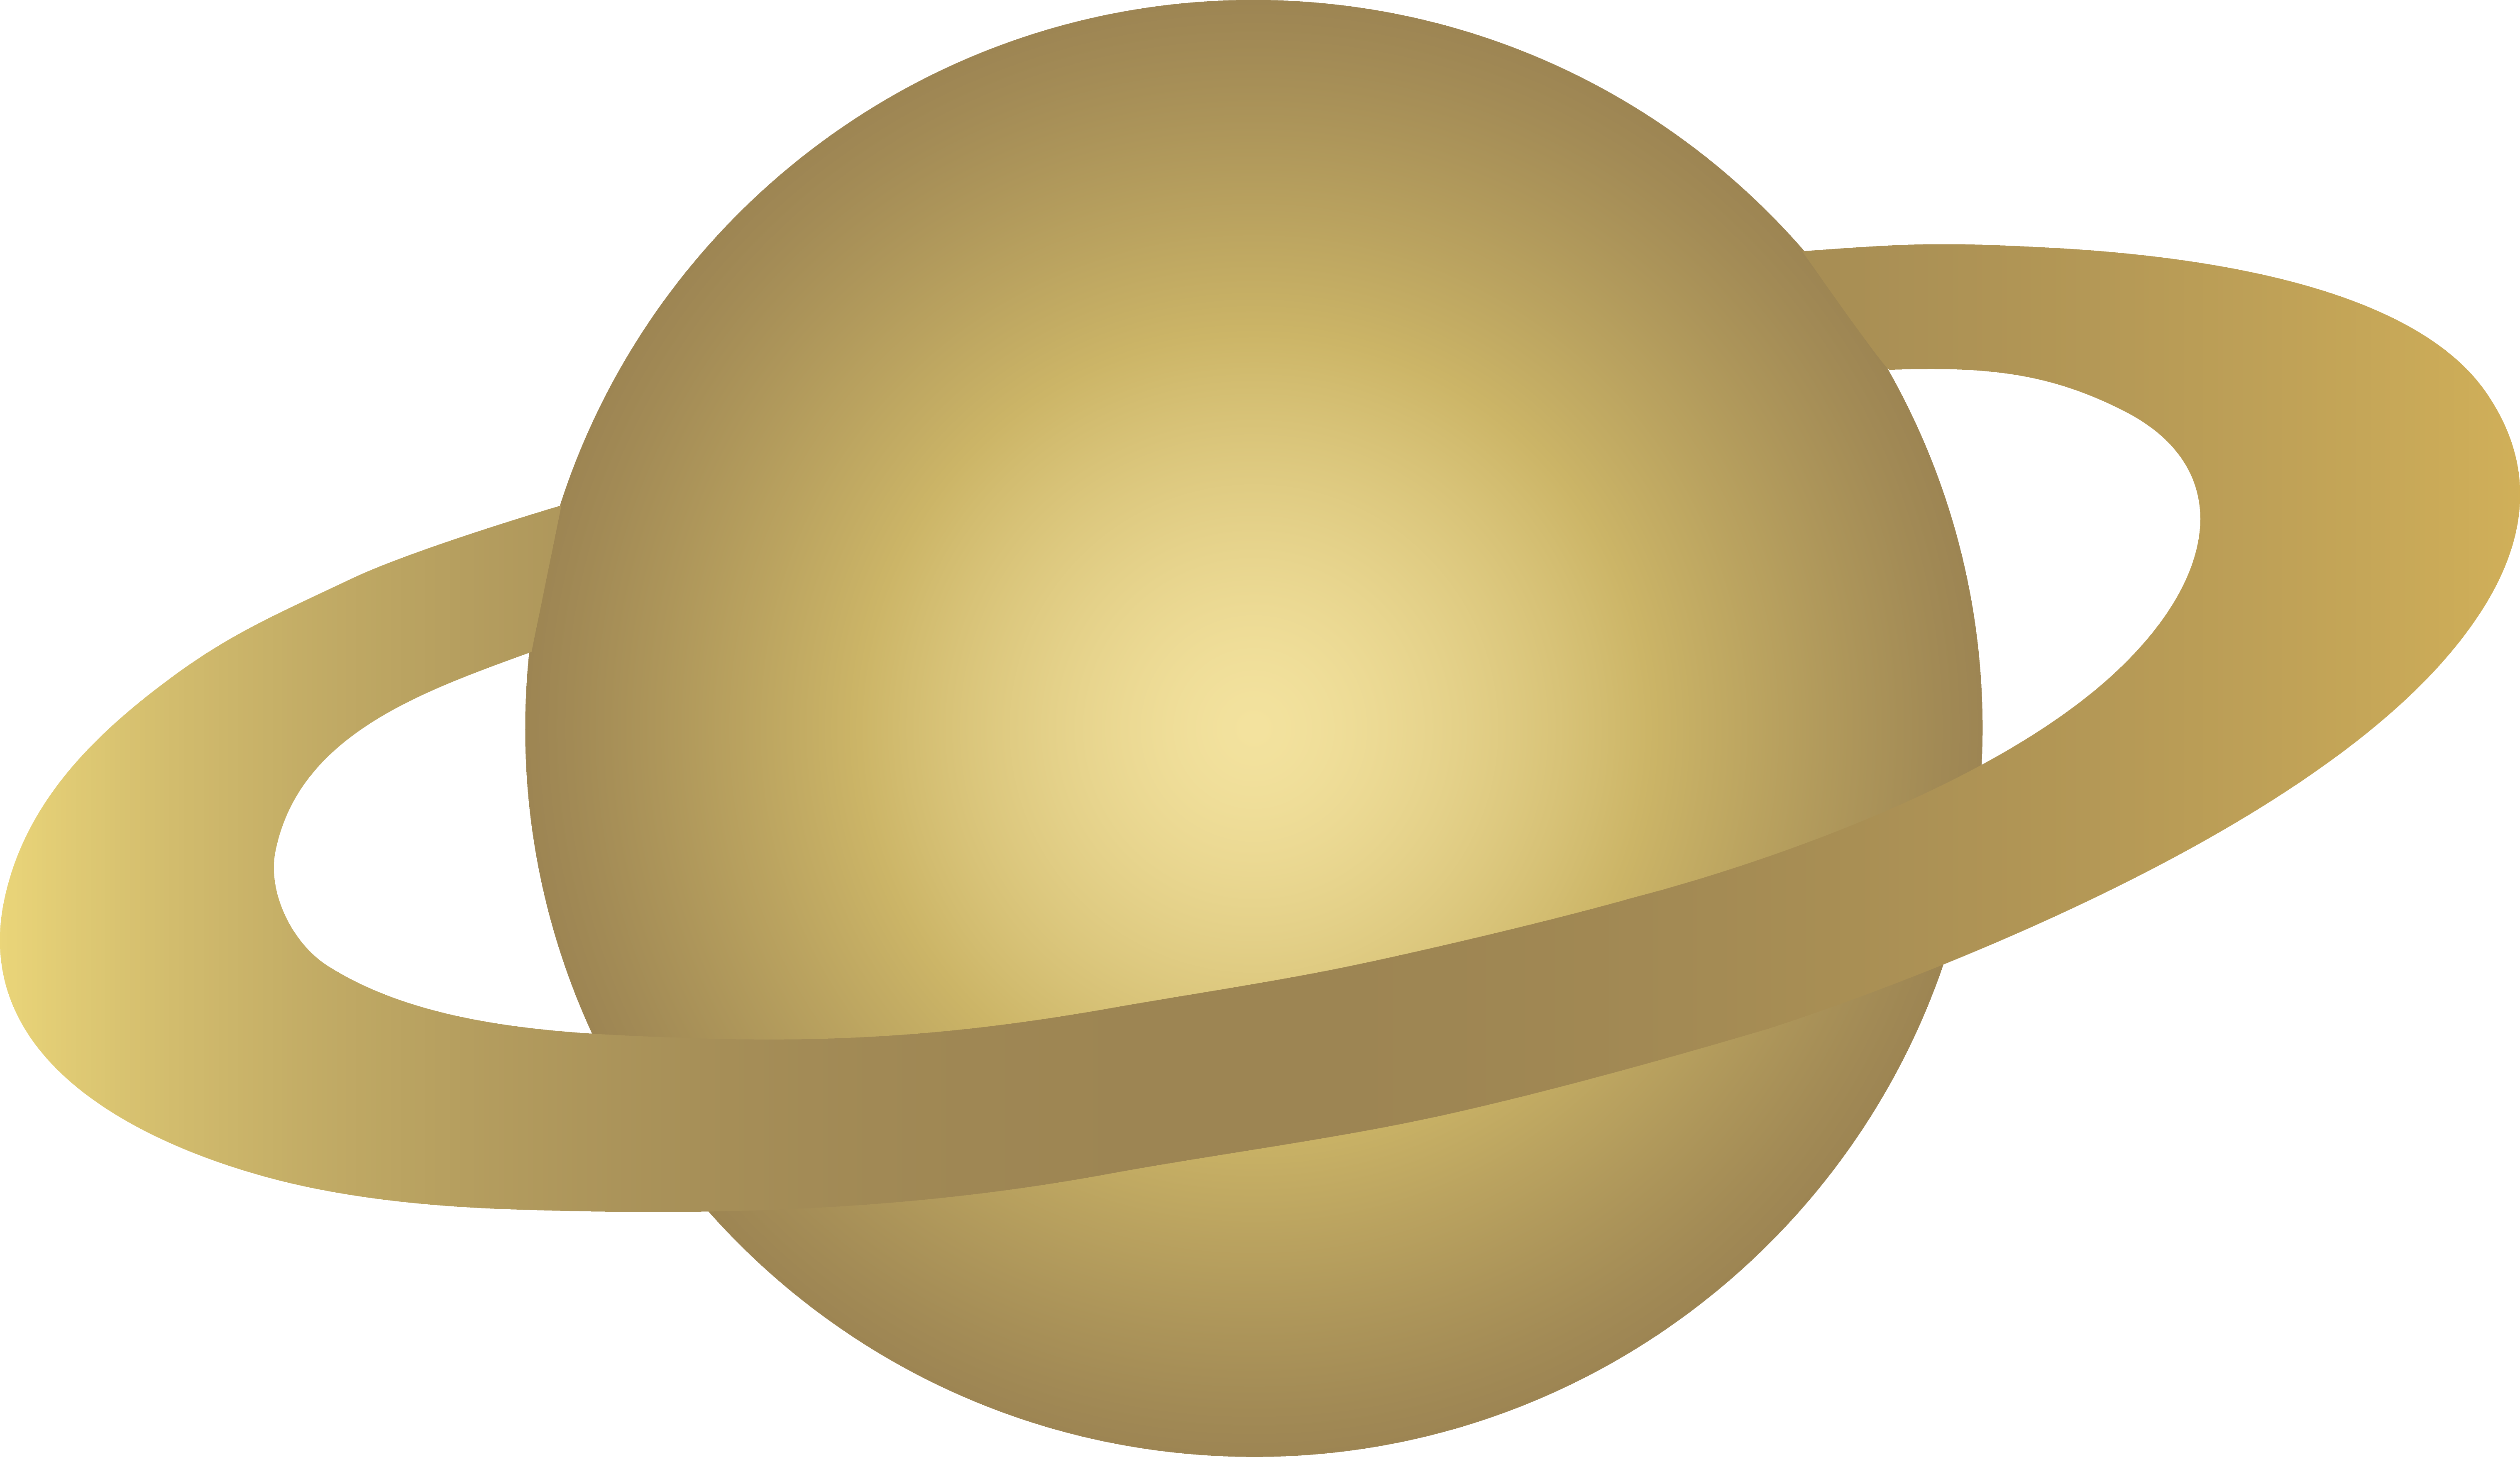 Beige clipart #3, Download drawings